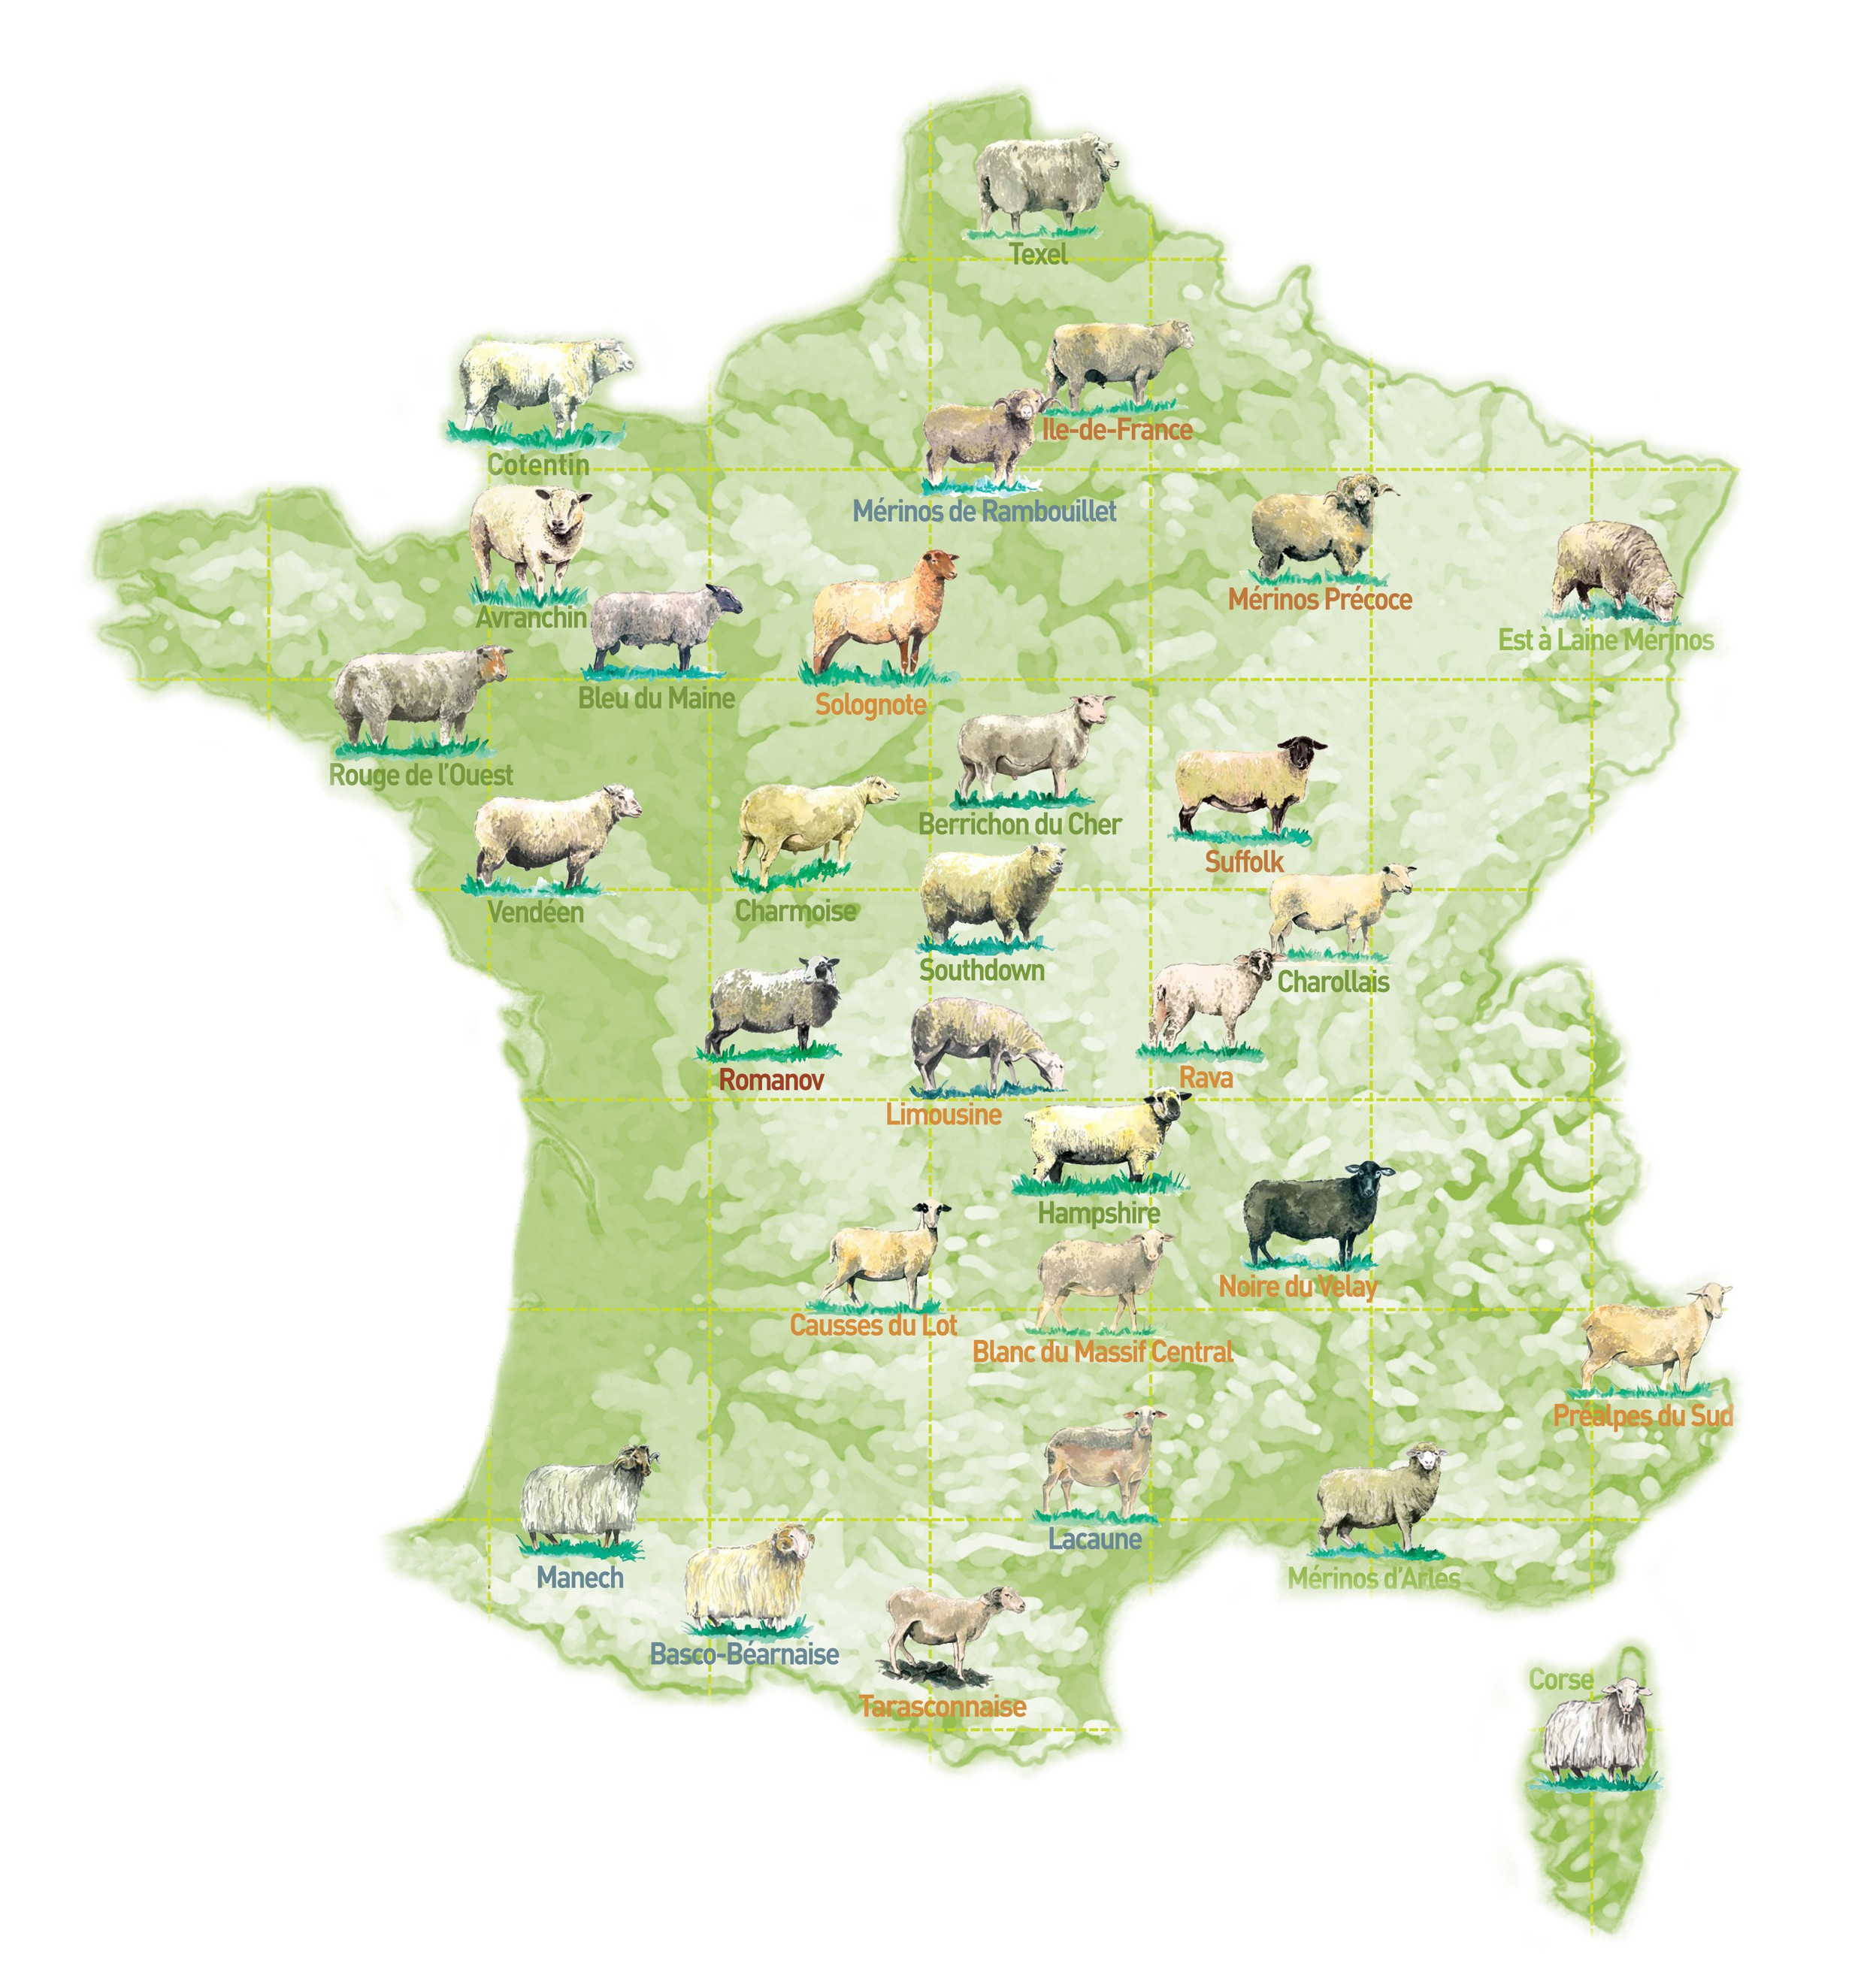 Carte des races ovines en France